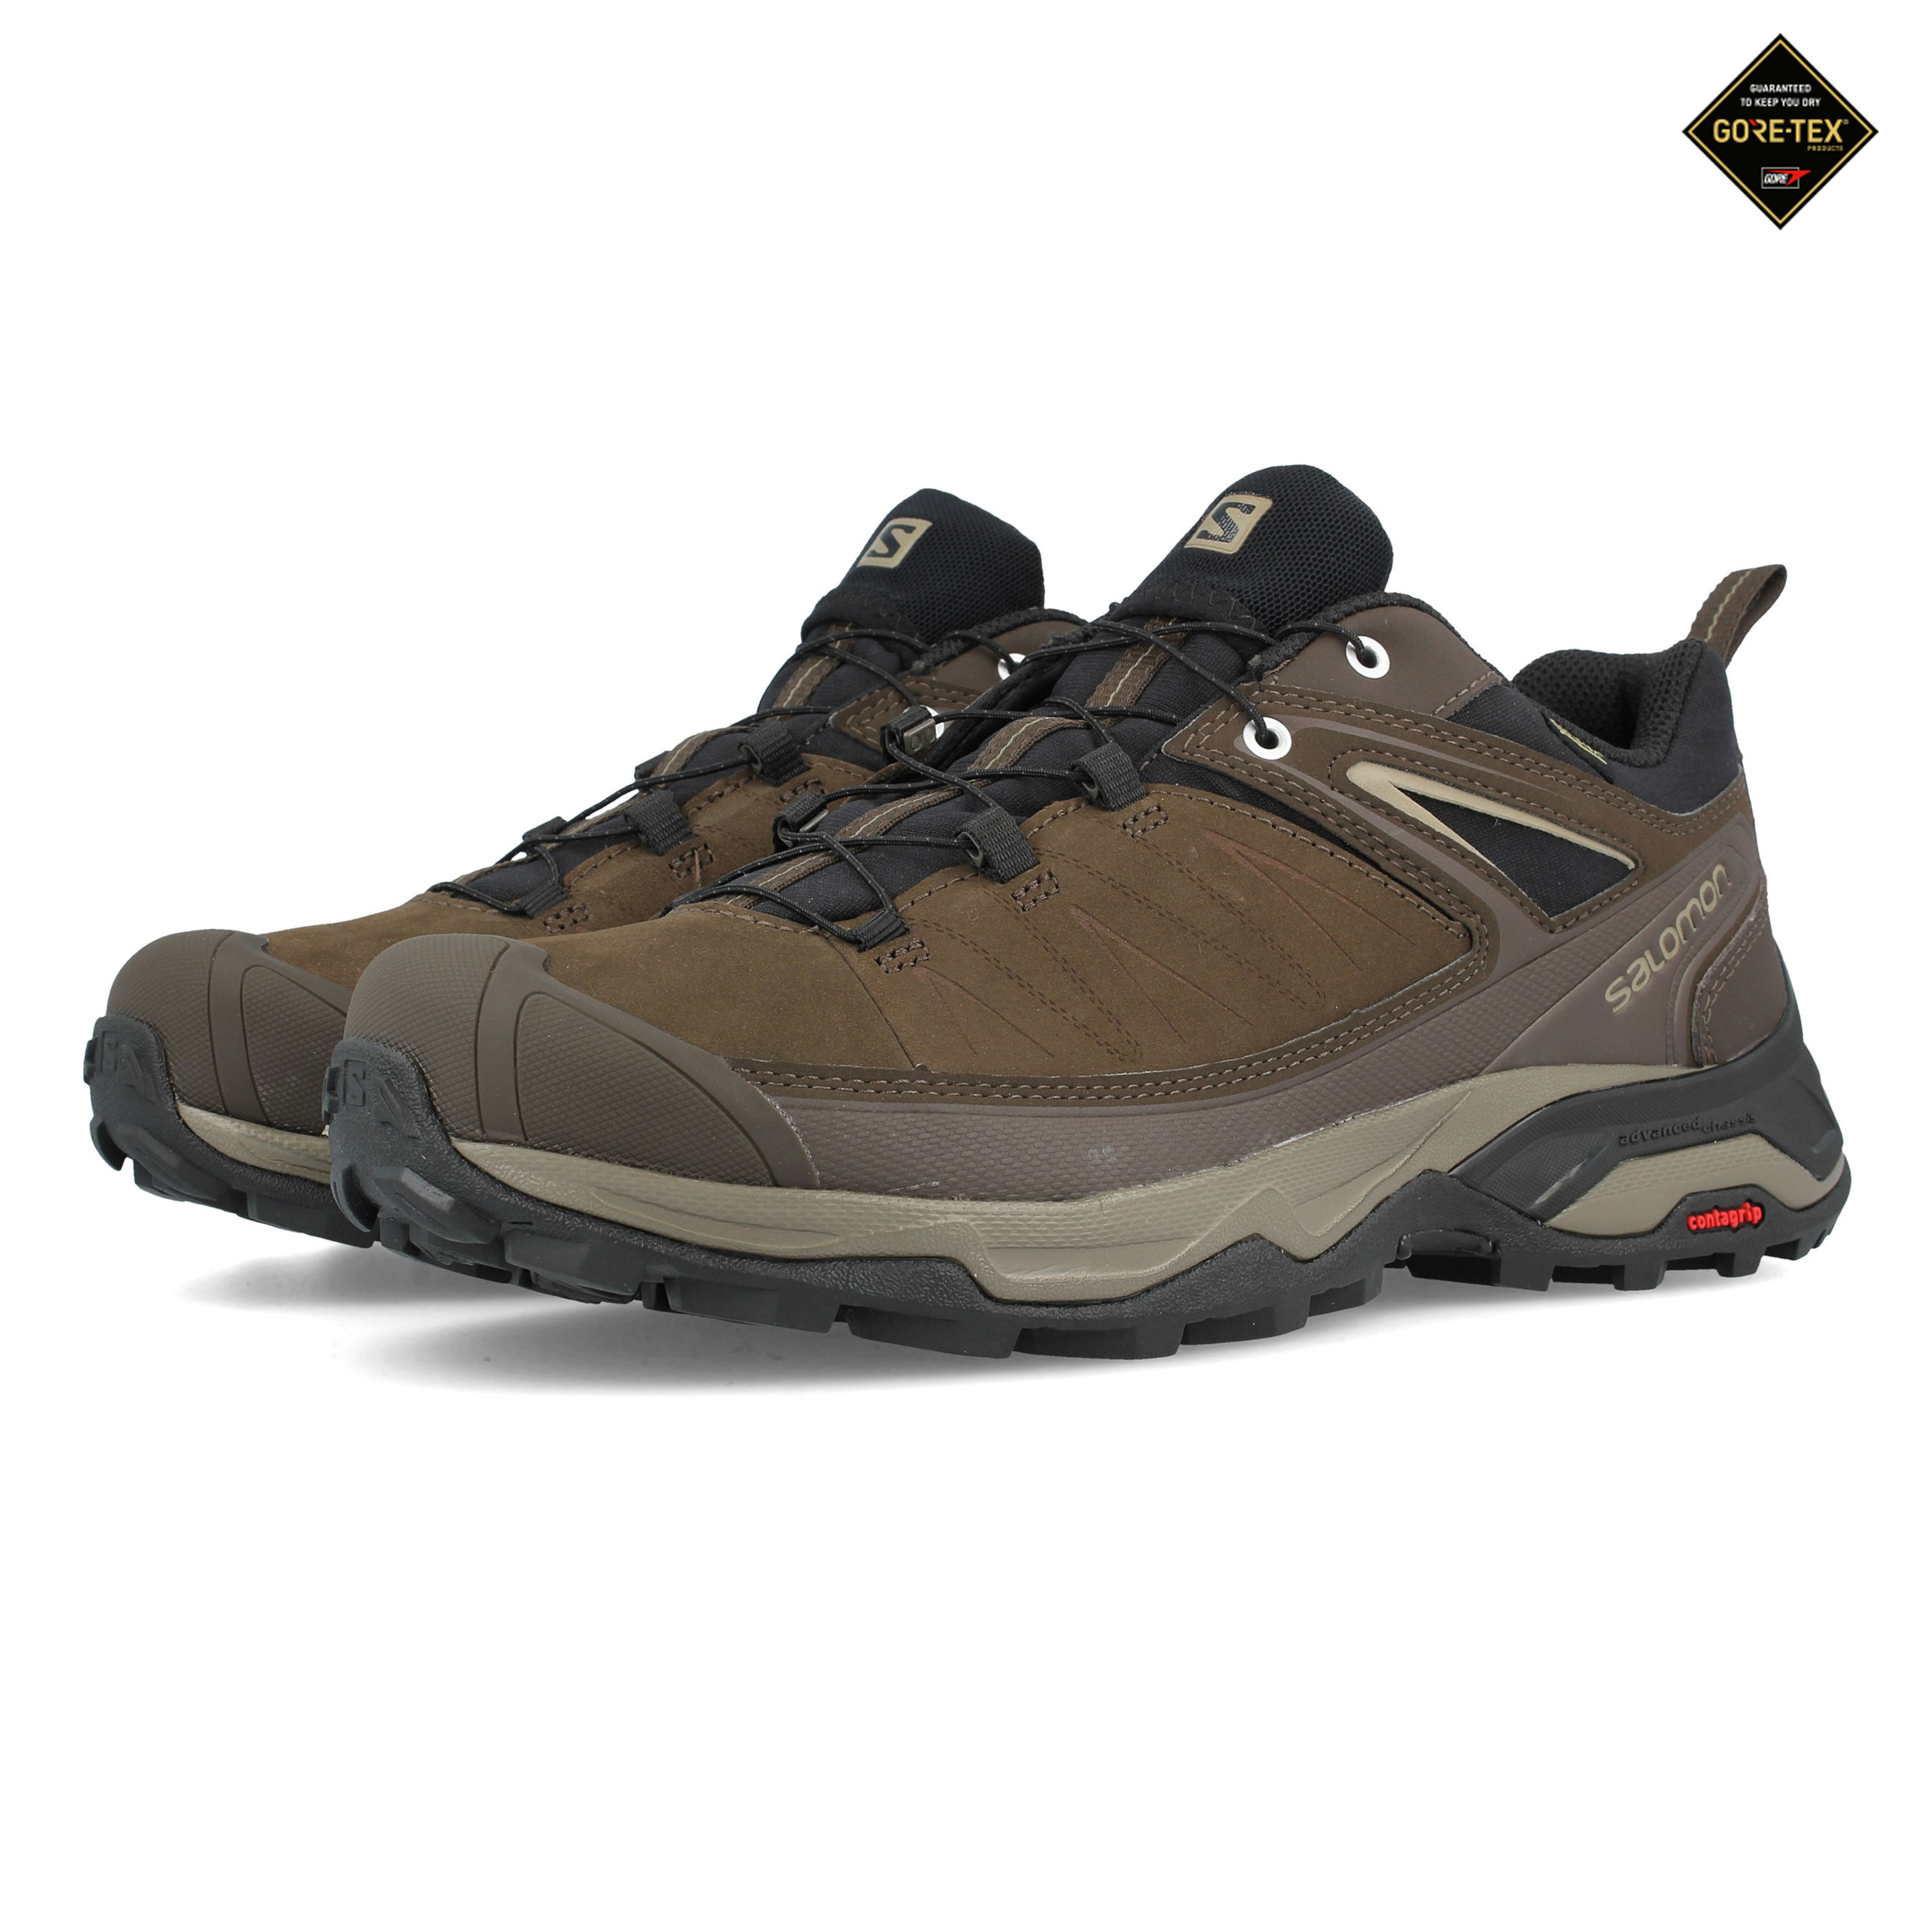 9e2dab24d7 Details about Salomon Mens X Ultra 3 LTR GORE-TEX Walking Shoes Brown  Sports Outdoors Trainers